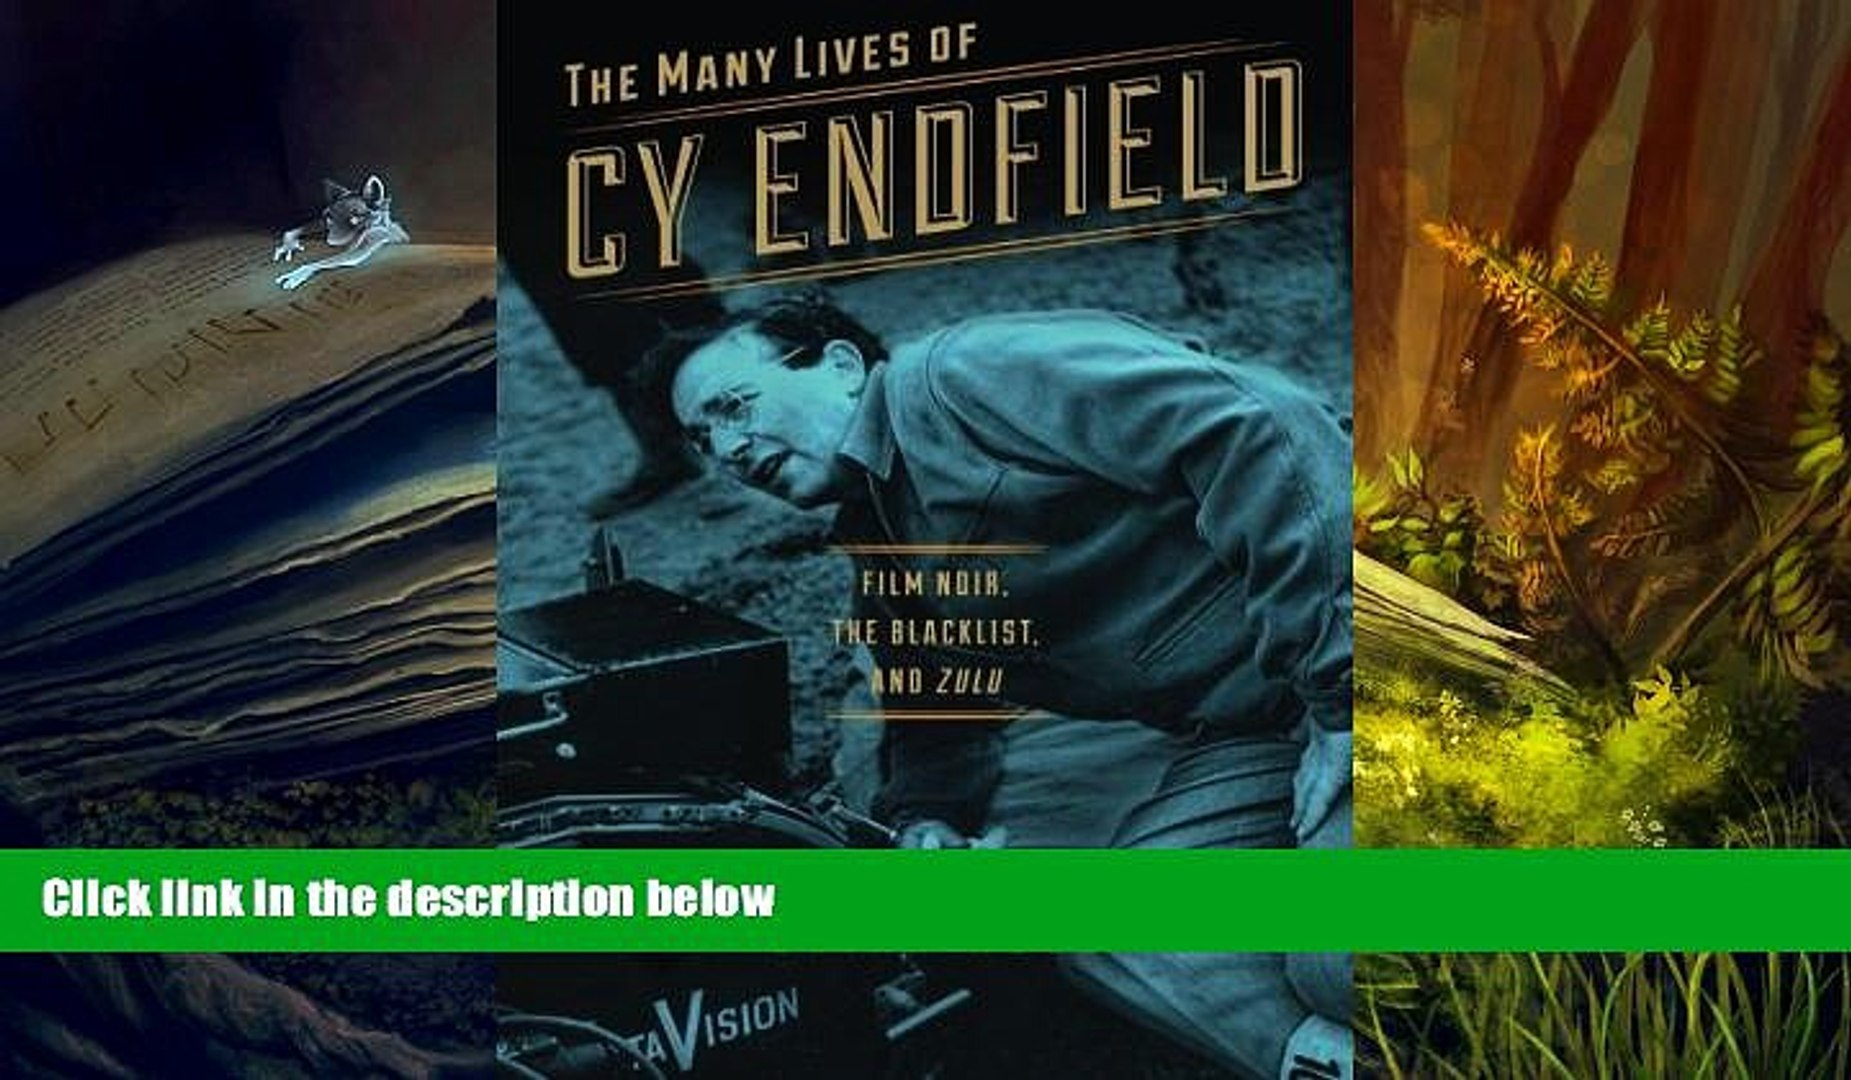 FREE [DOWNLOAD] The Many Lives of Cy Endfield: Film Noir, the Blacklist, and Zulu (Wisconsin Film